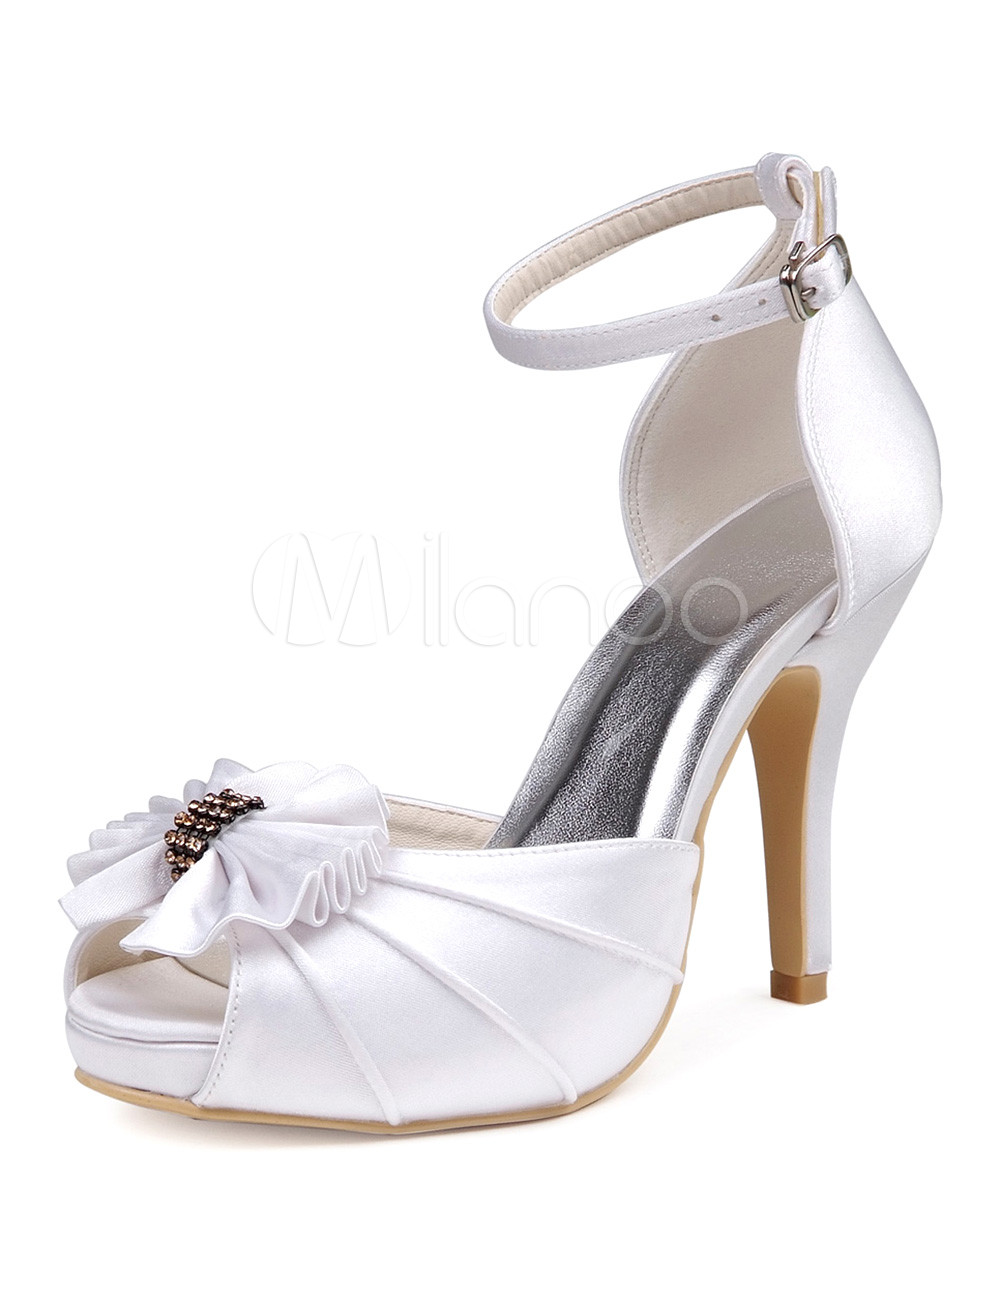 Buy White Ankle Strap Peep Toe Silk And Satin Gorgeous Shoes for Bride for $69.59 in Milanoo store